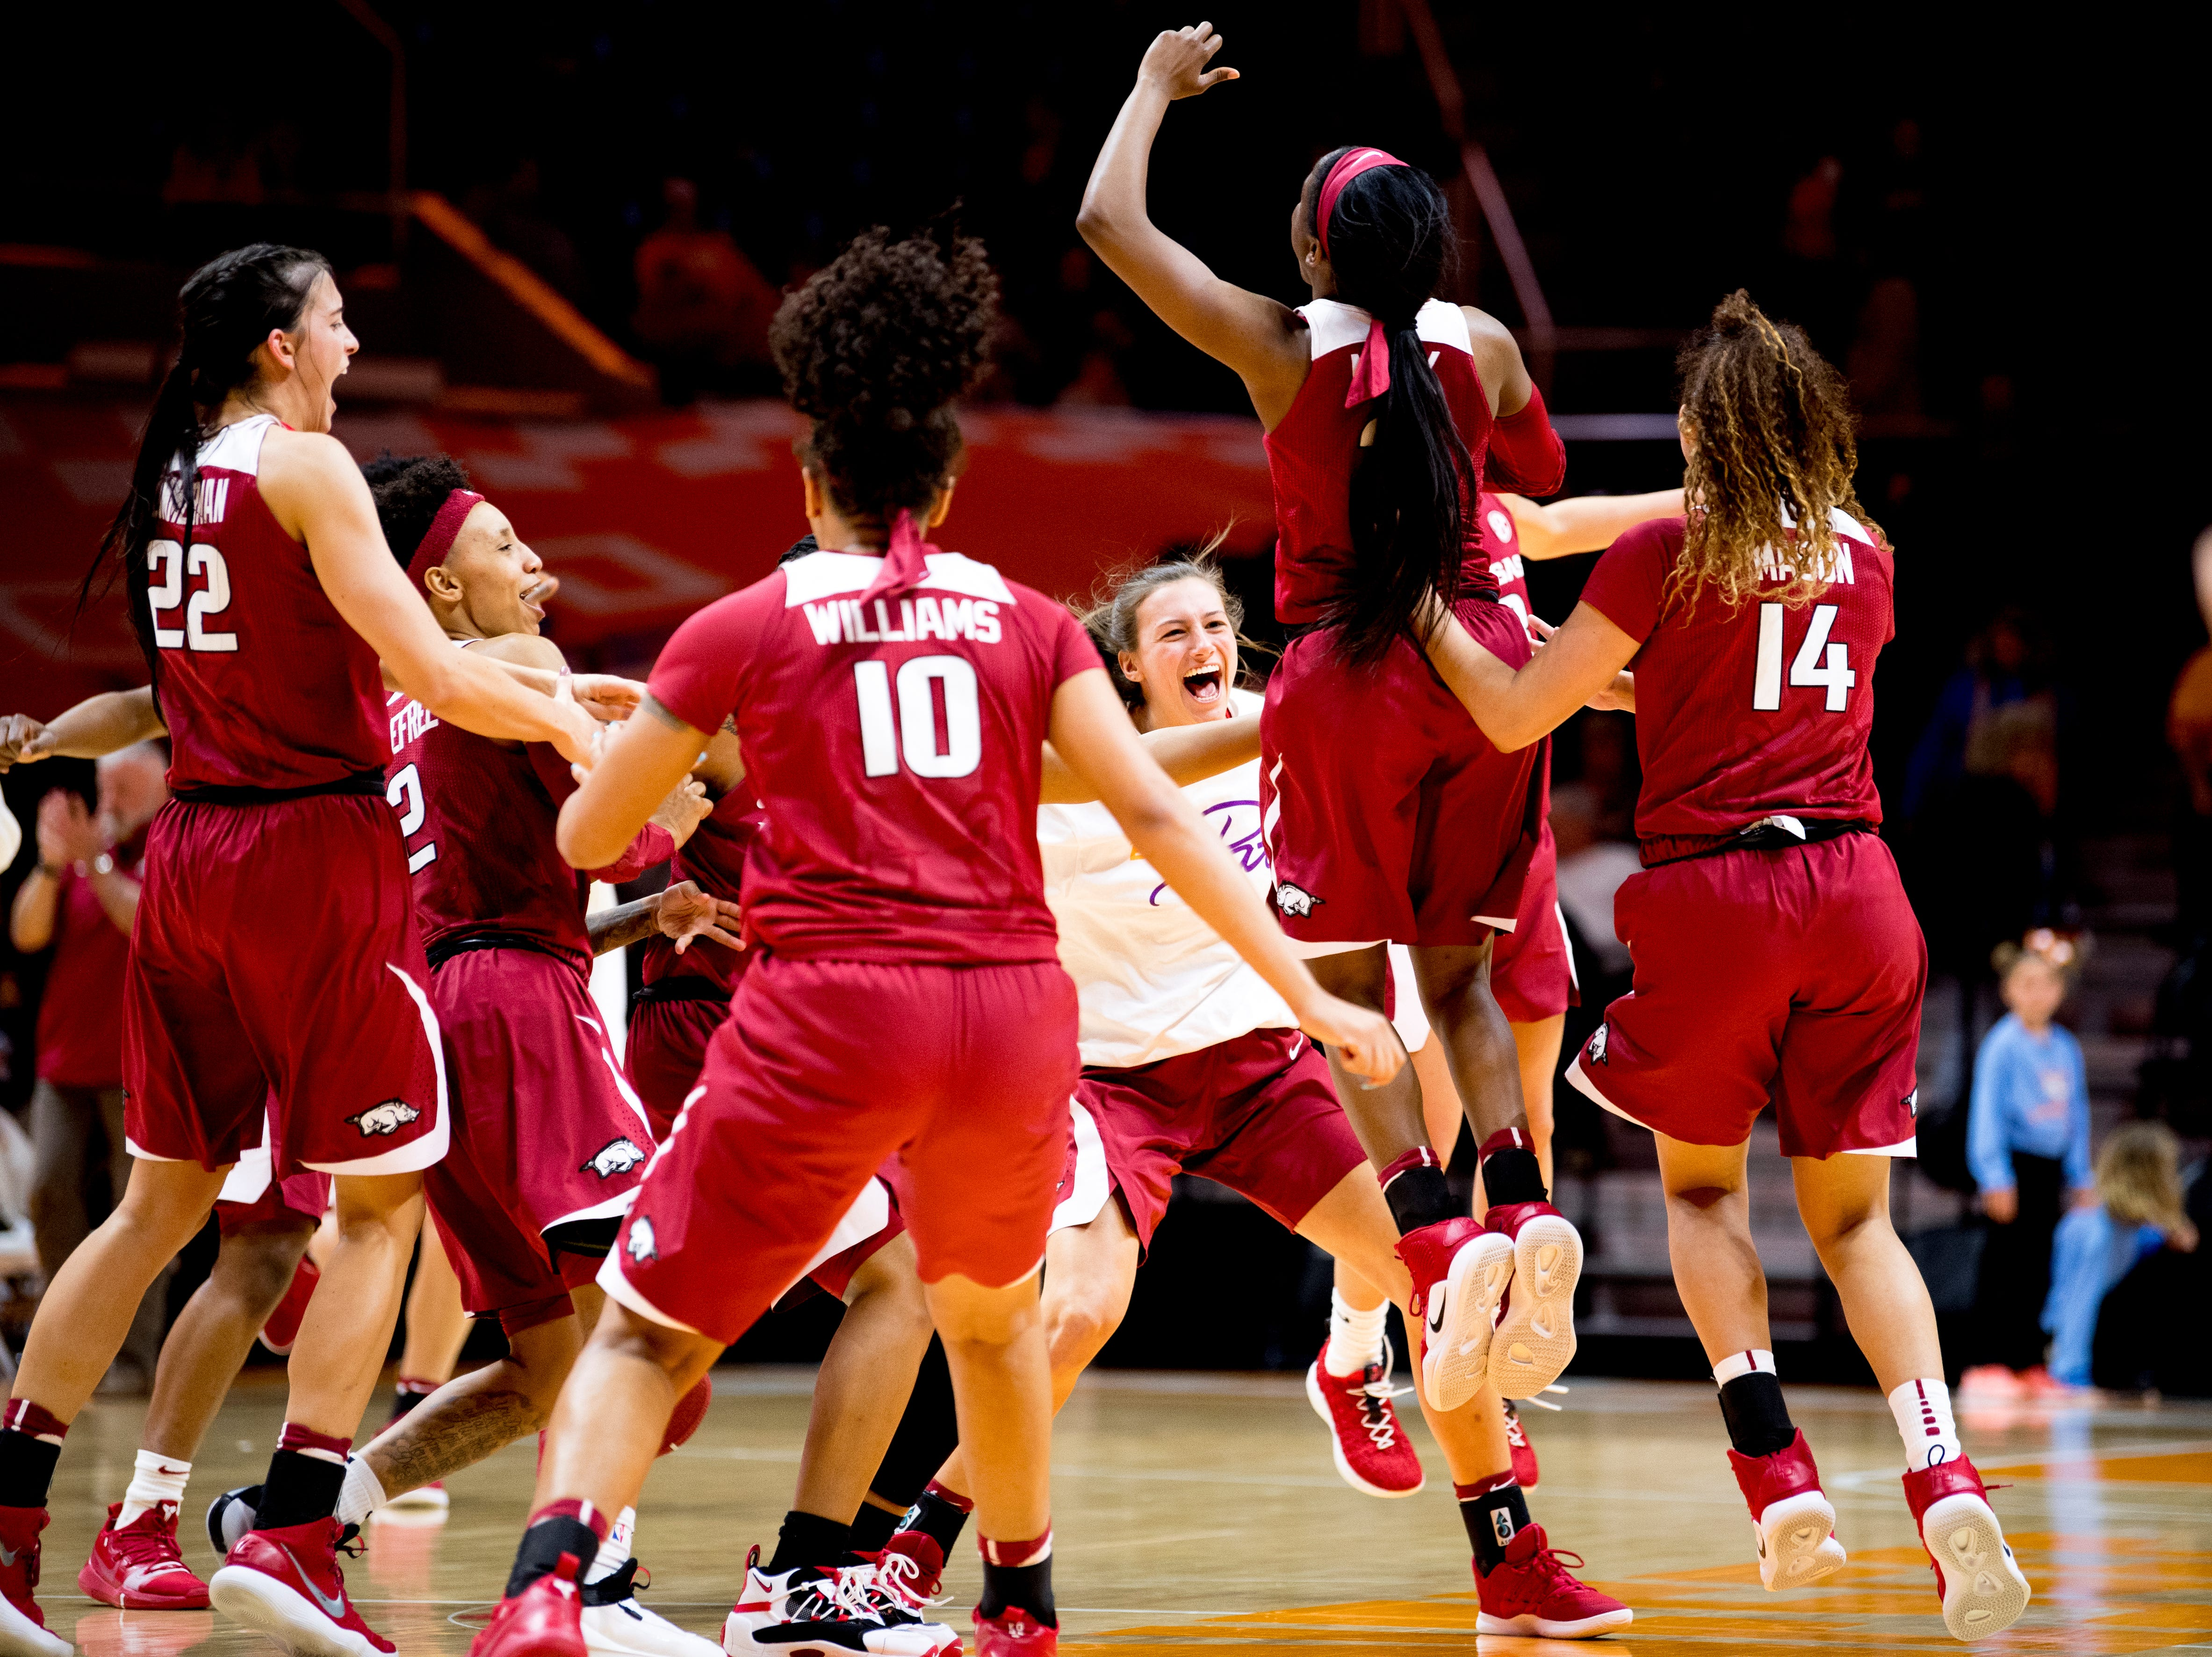 Arkansas celebrates their 80-79 win over Tennessee at Thompson-Boling Arena in Knoxville, Tennessee on Monday, January 21, 2019.